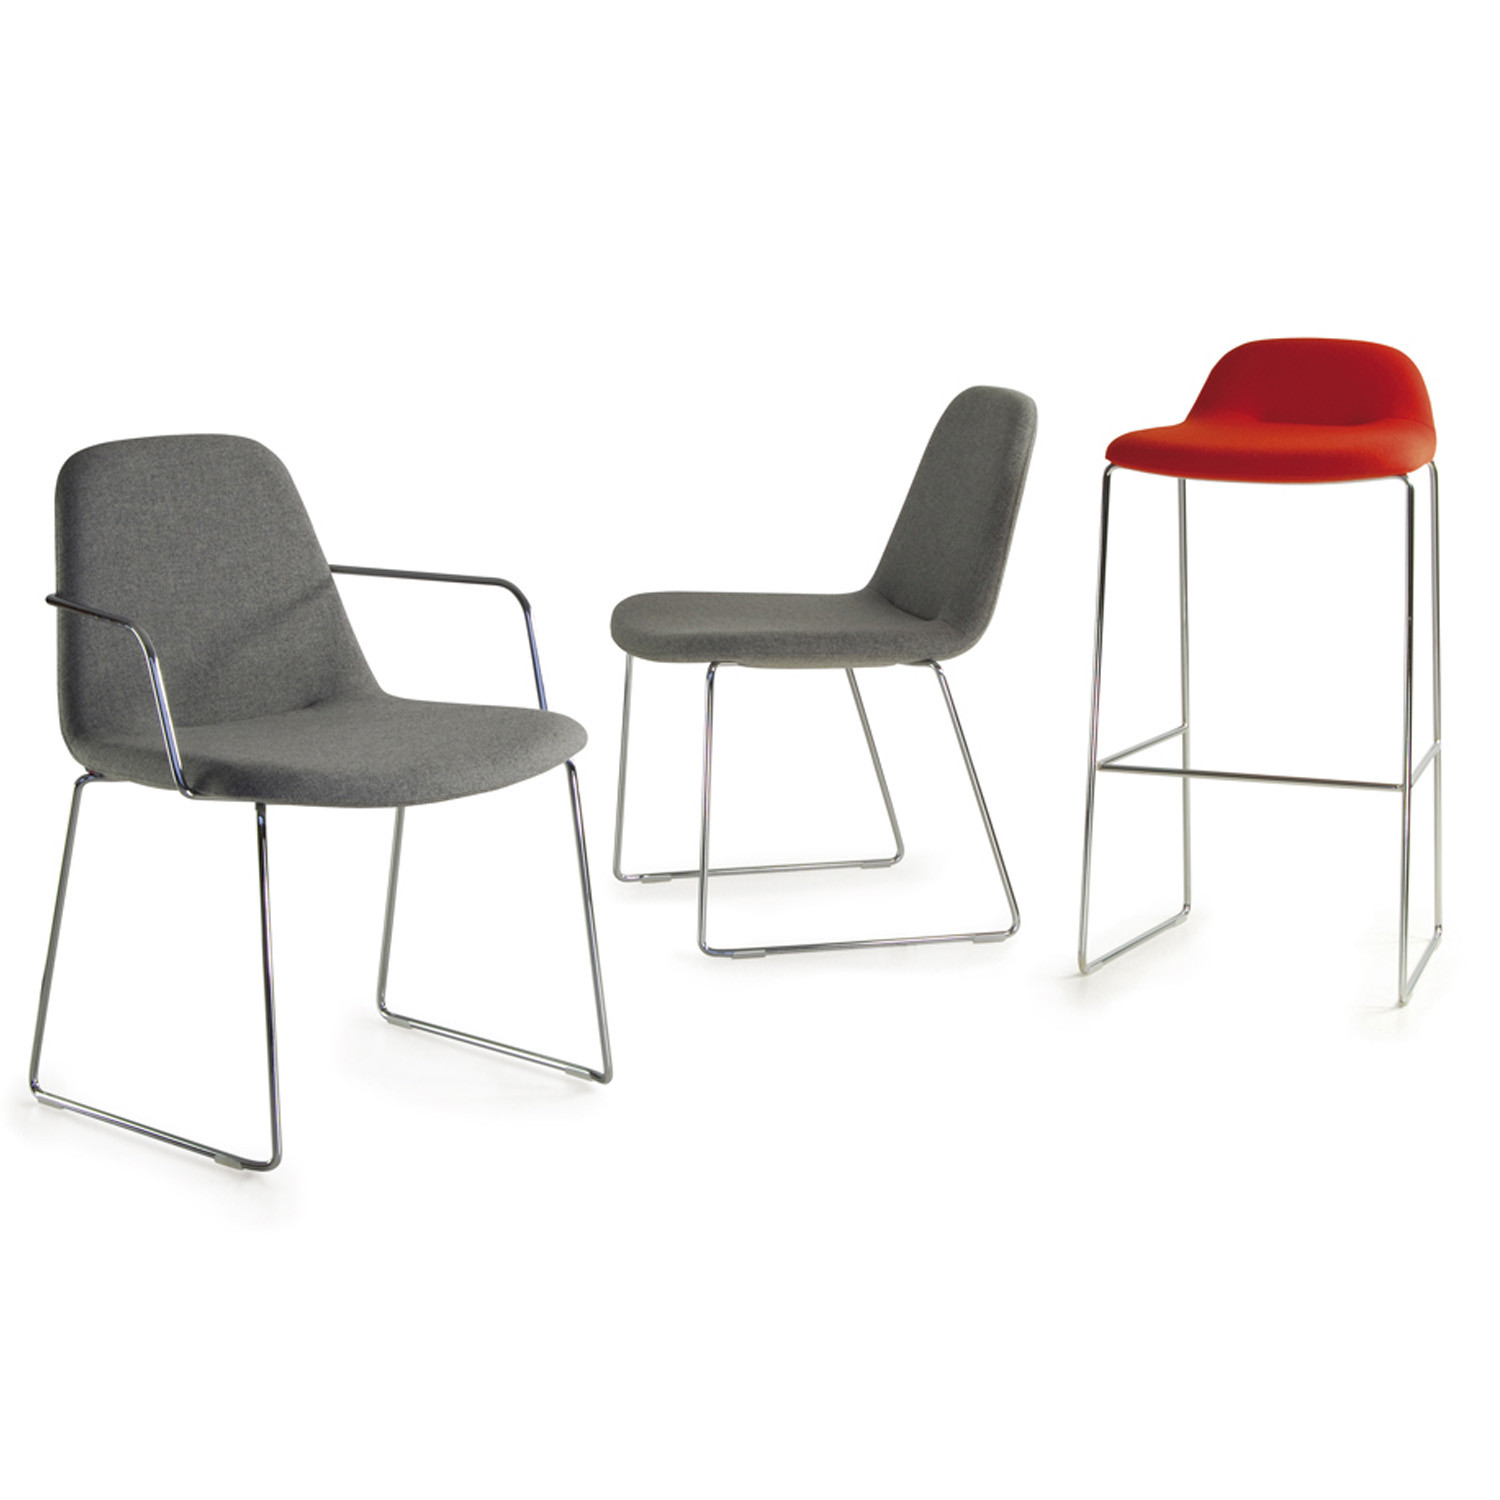 HM58 Breakout and Seminar Chair Range